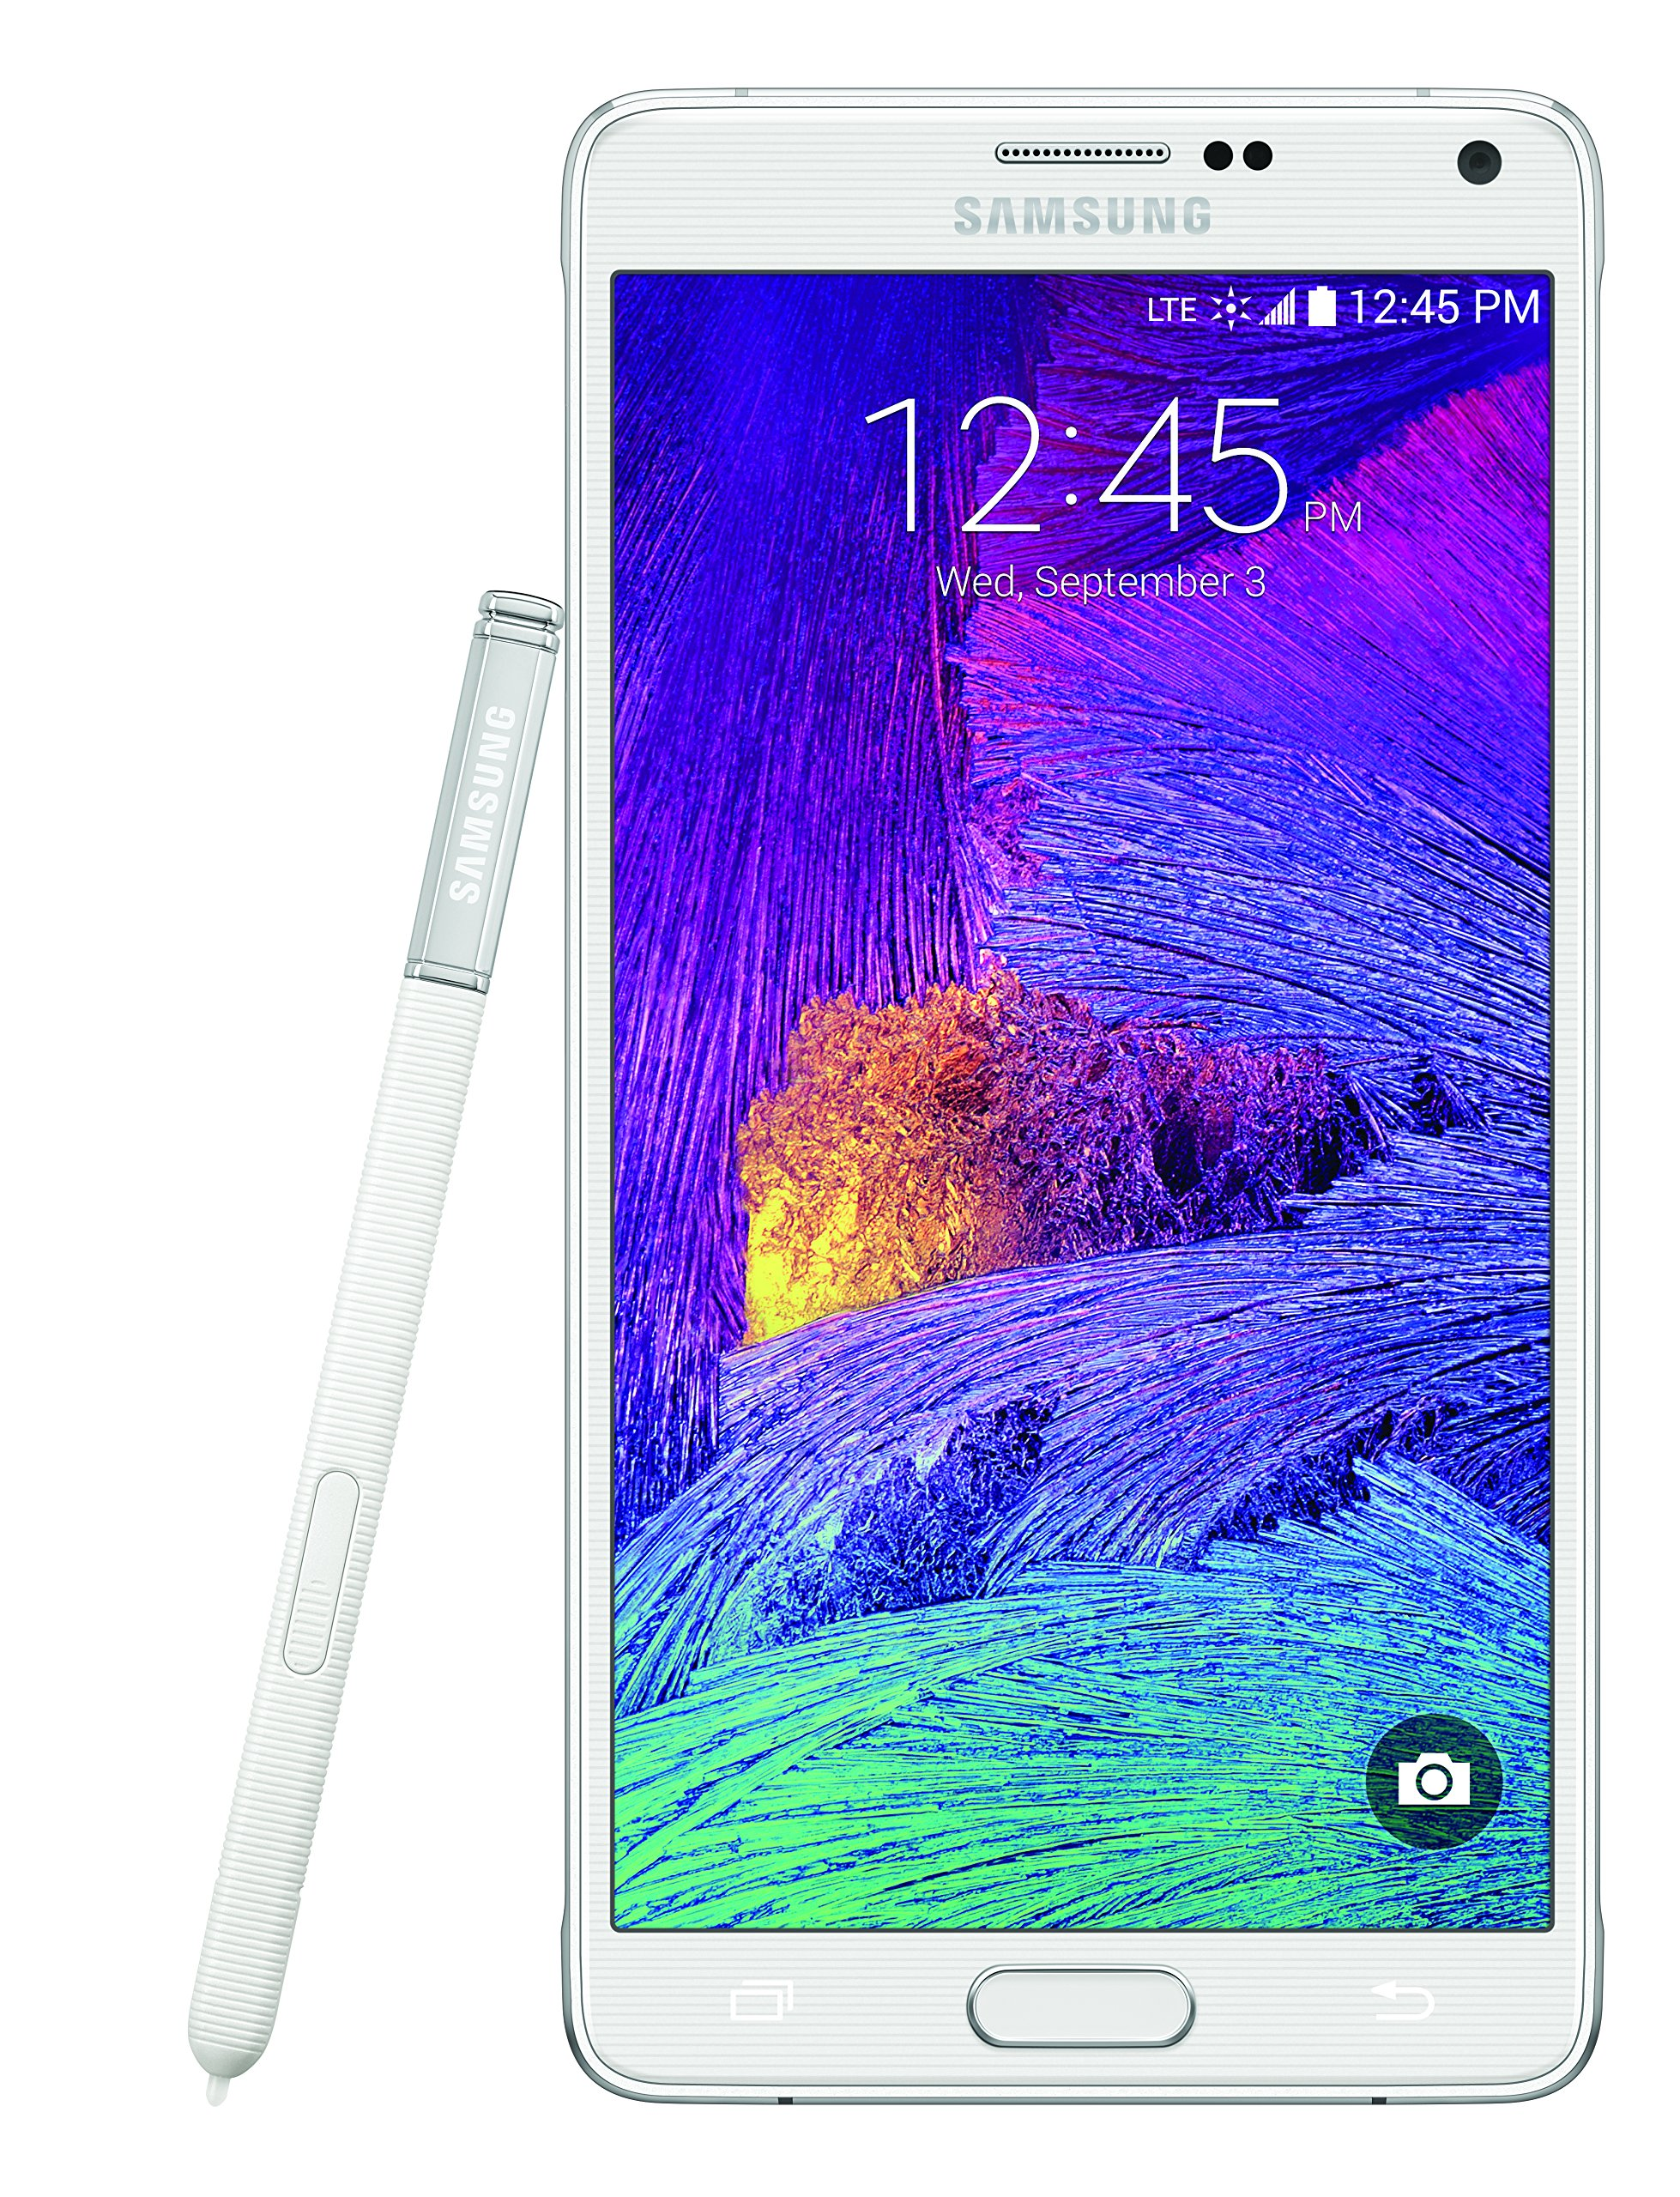 Samsung Galaxy Note 4, Frosted White 32GB (Sprint)